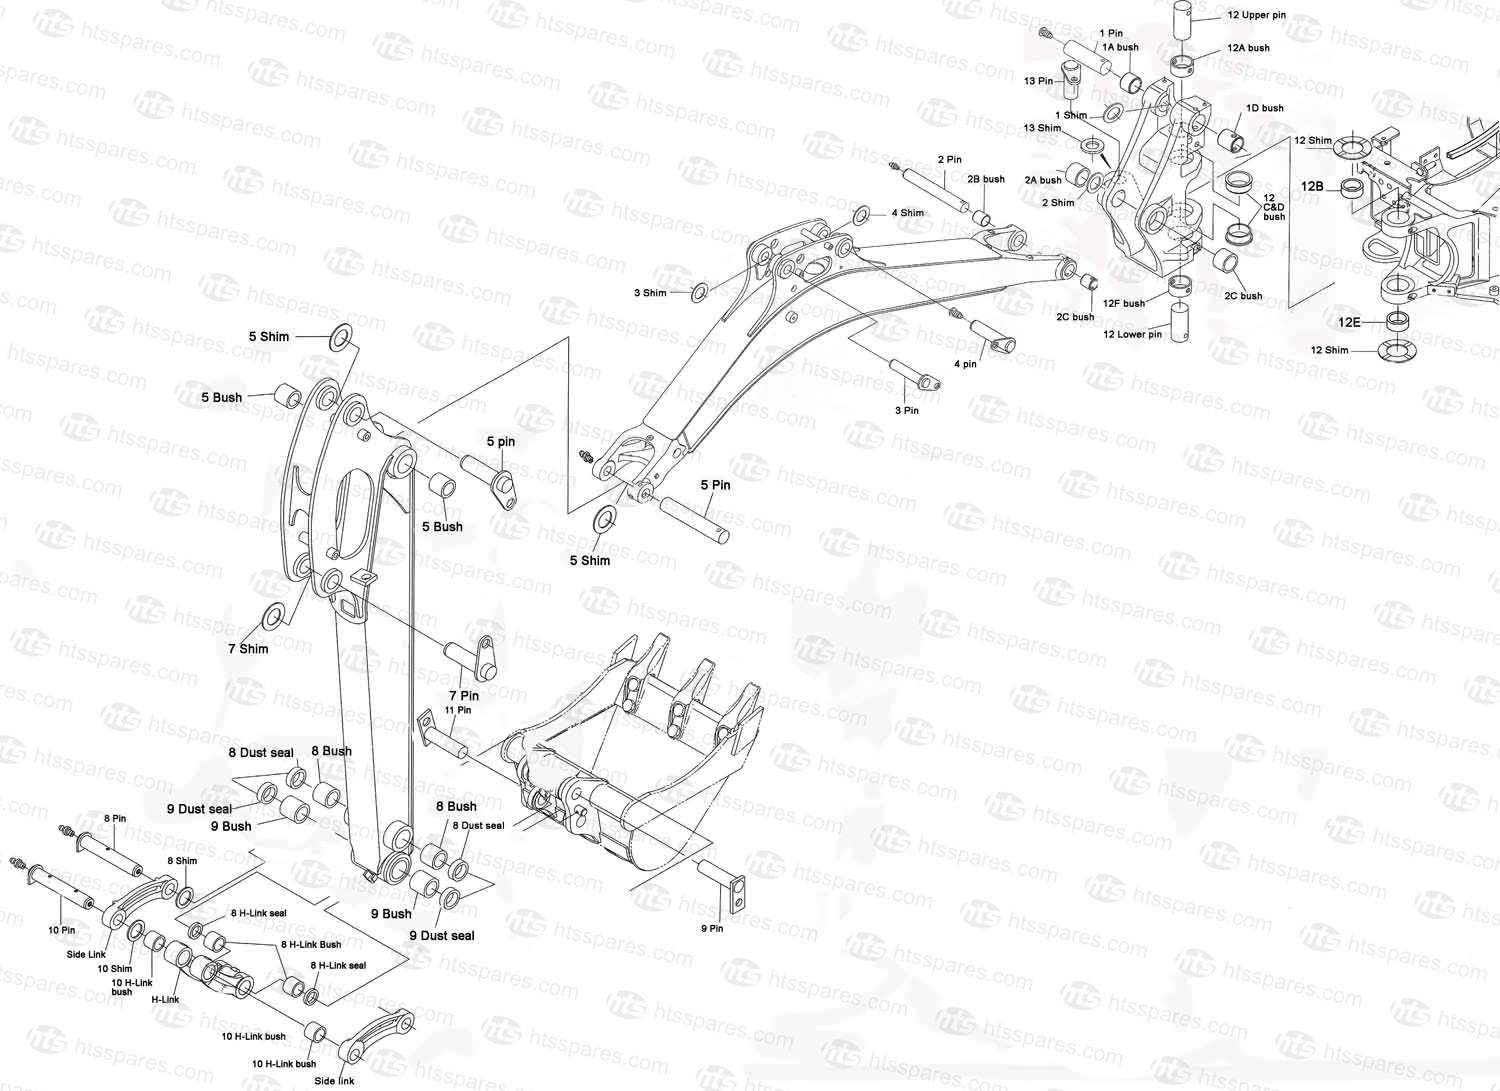 barford dumper wiring diagram   29 wiring diagram images